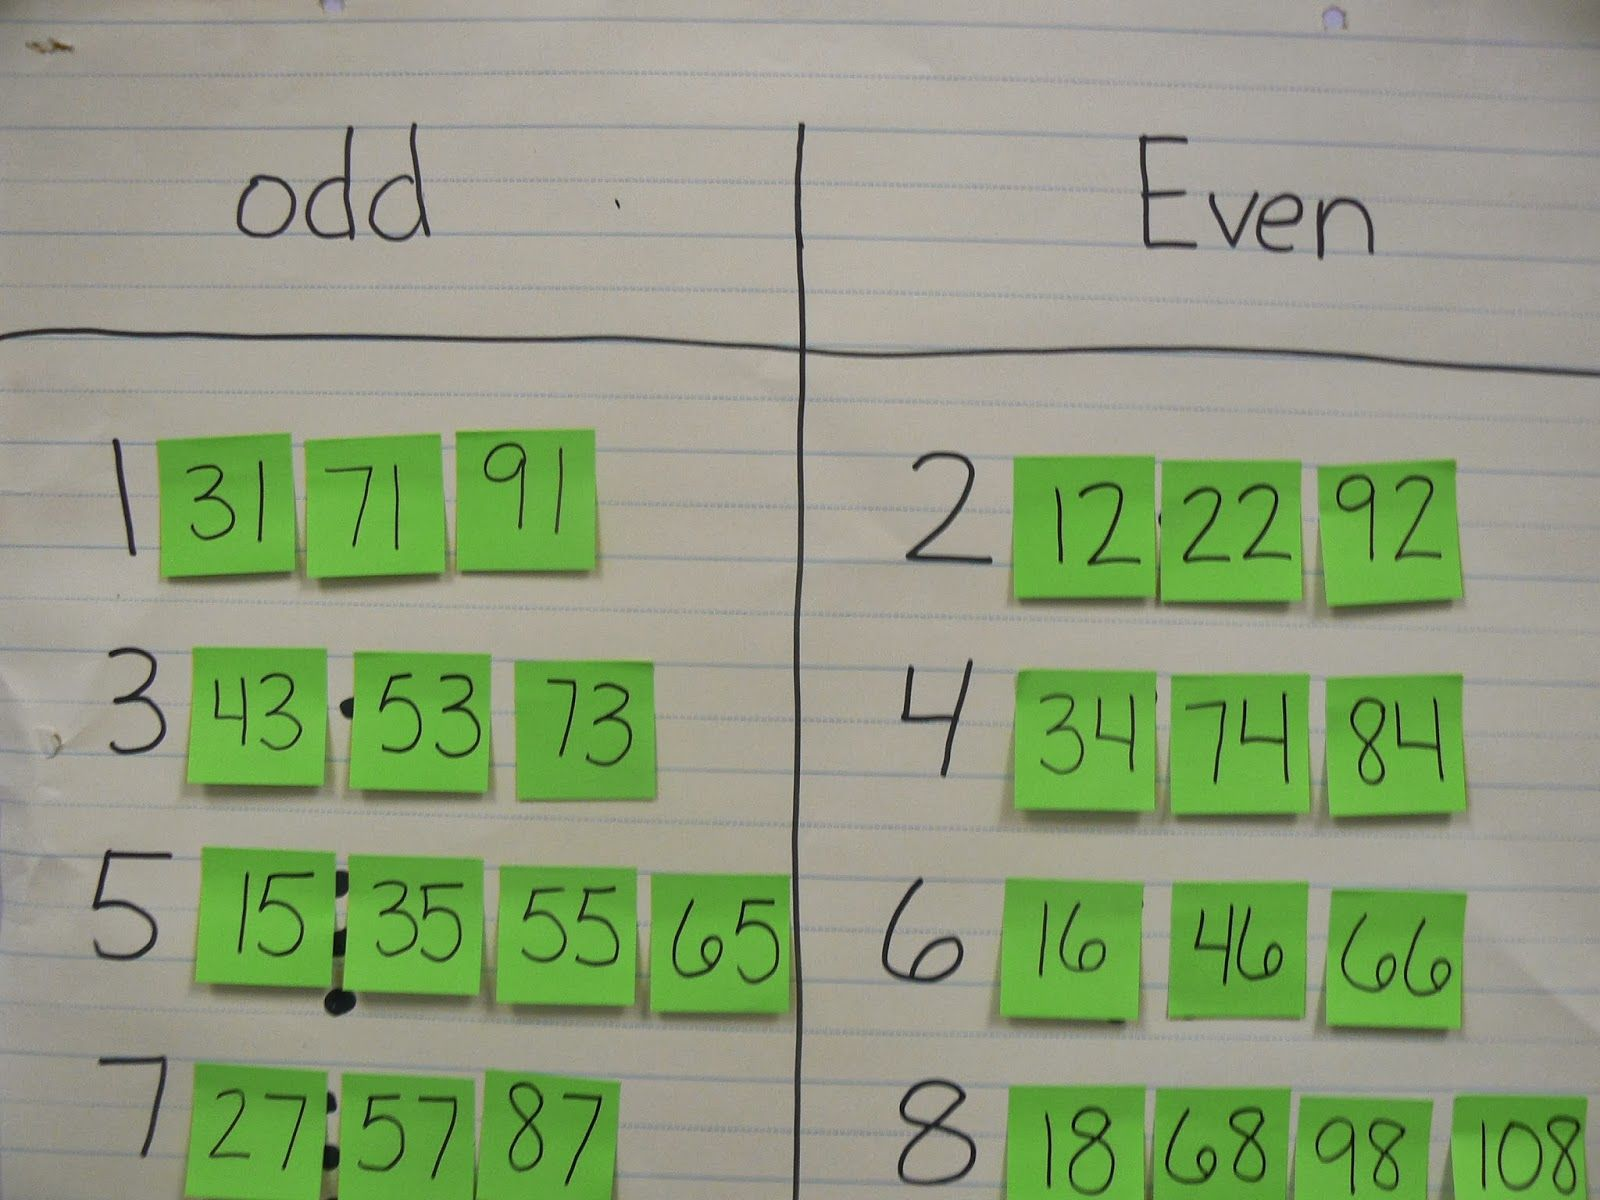 Mrs T S First Grade Class Odd And Even Game Odd And Even Games Second Grade Math Teaching Math